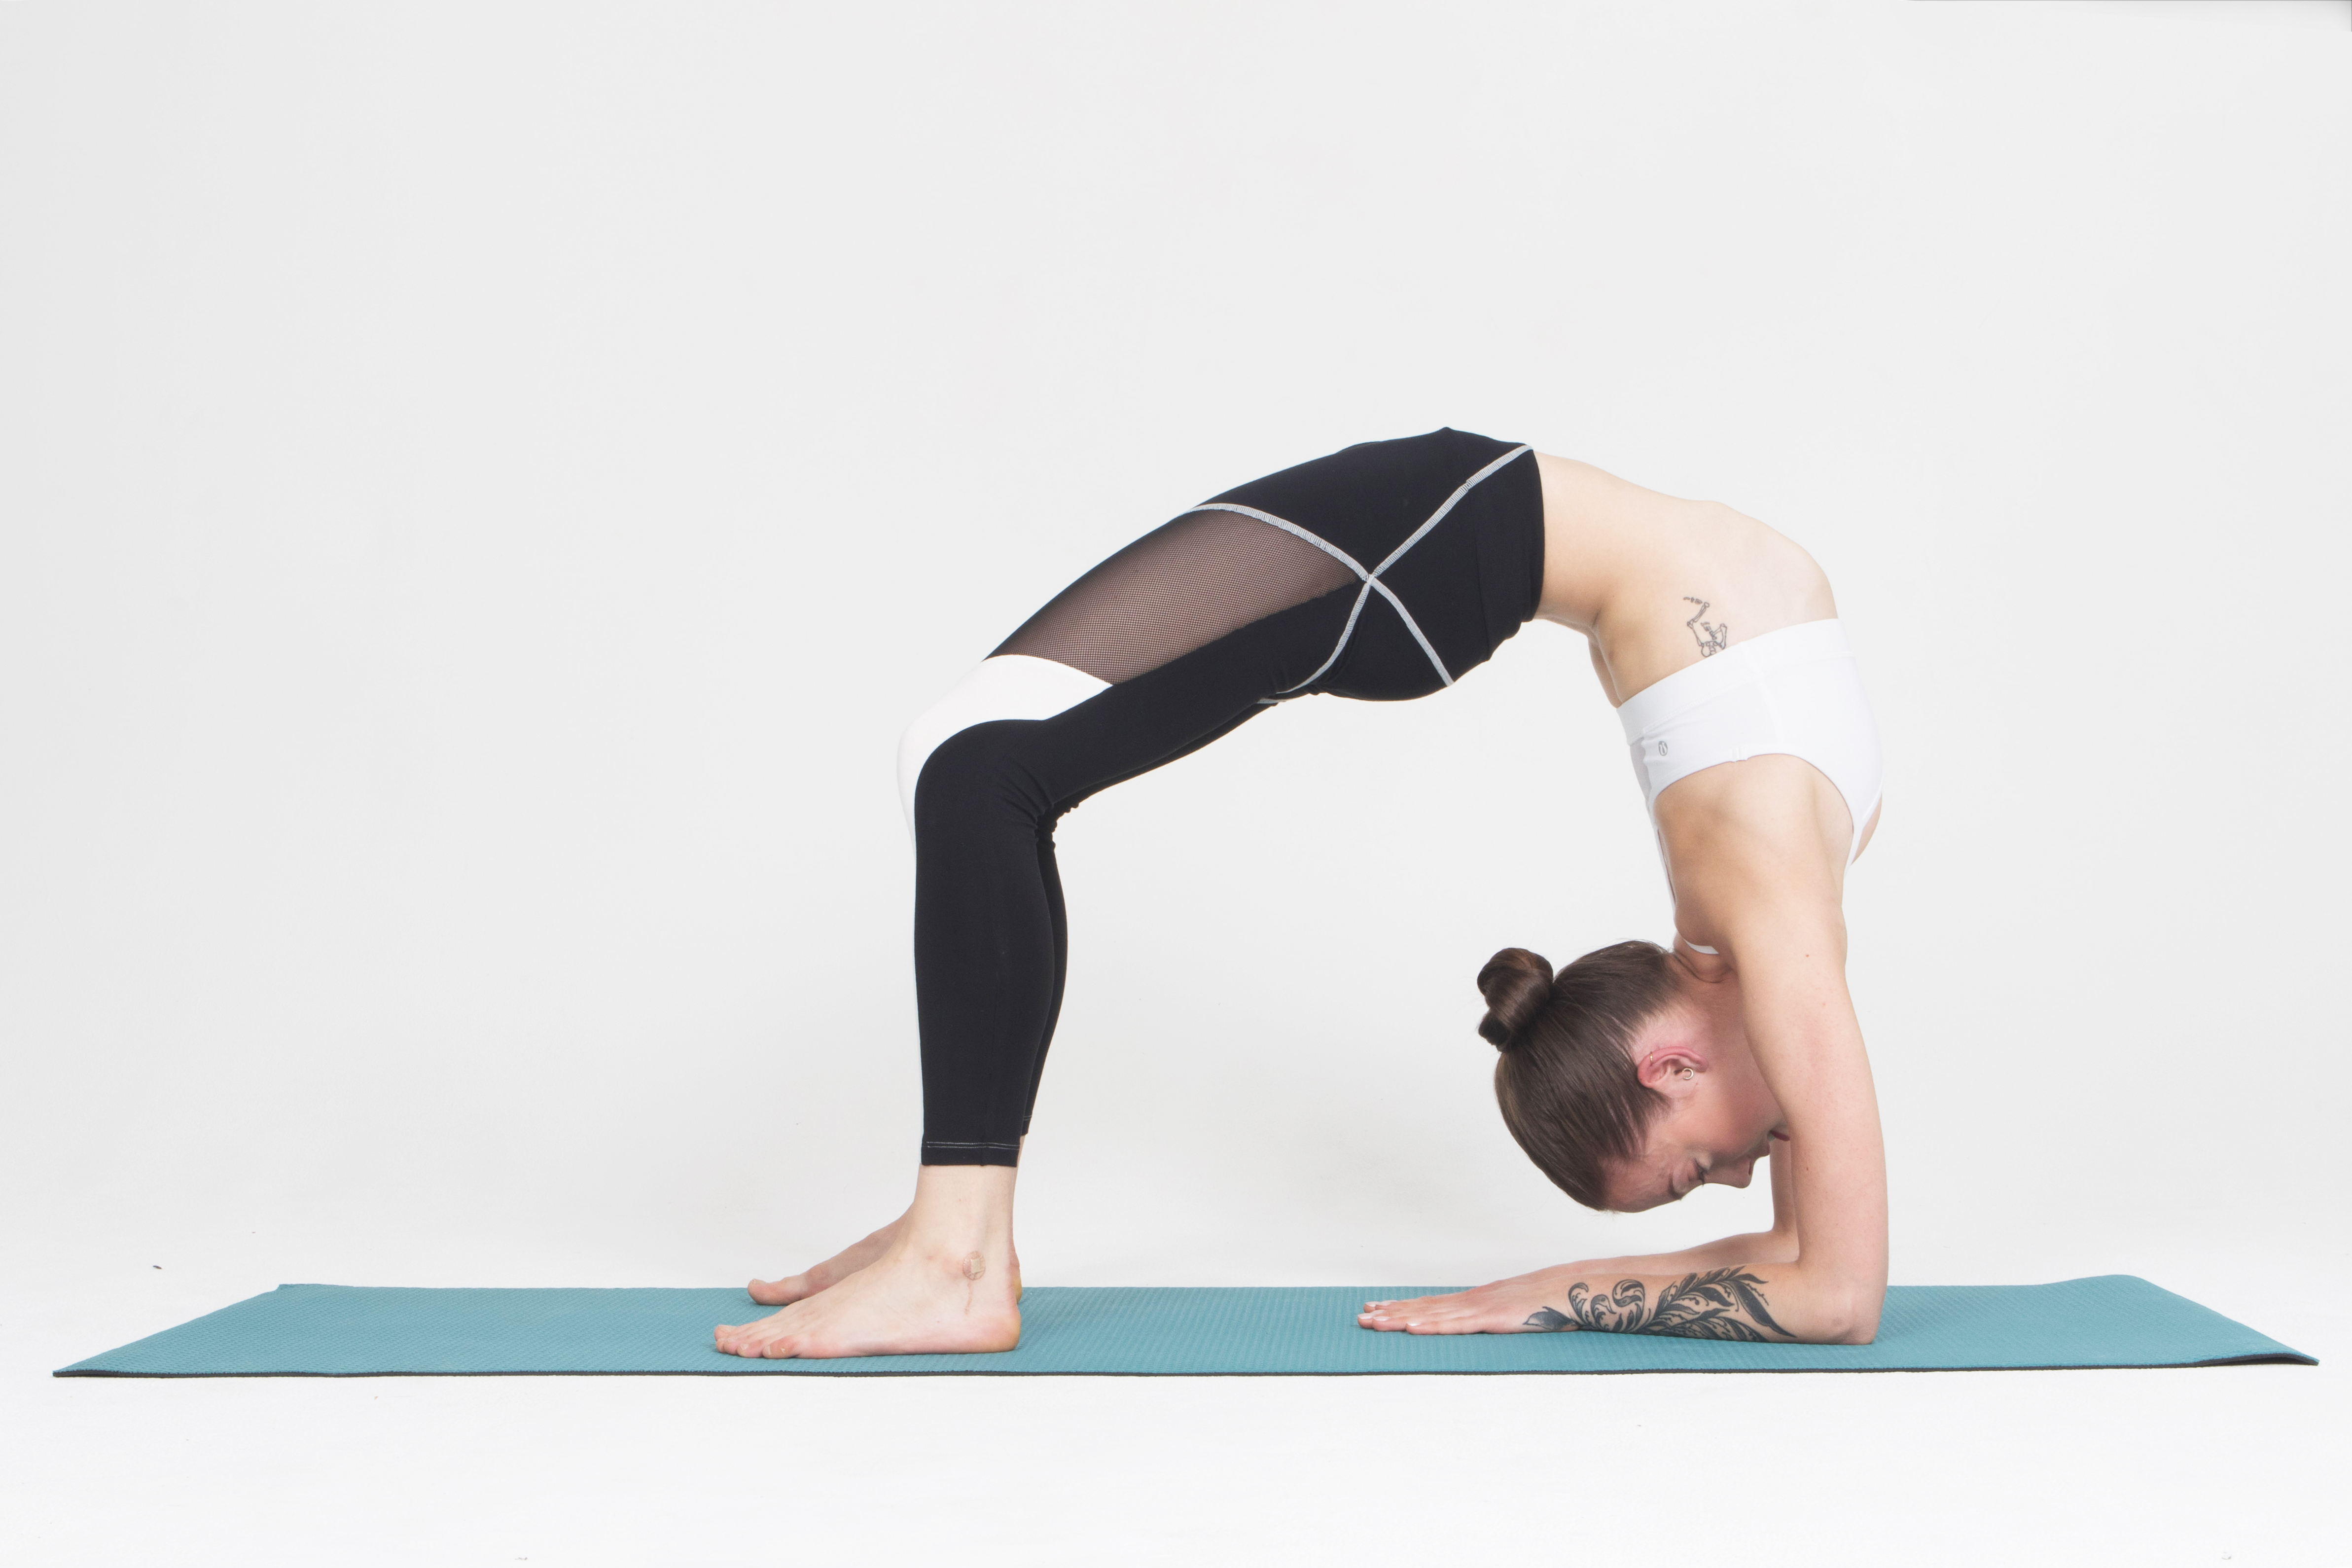 Yoga Pants That Correct Your Form And The Future Of Haptic